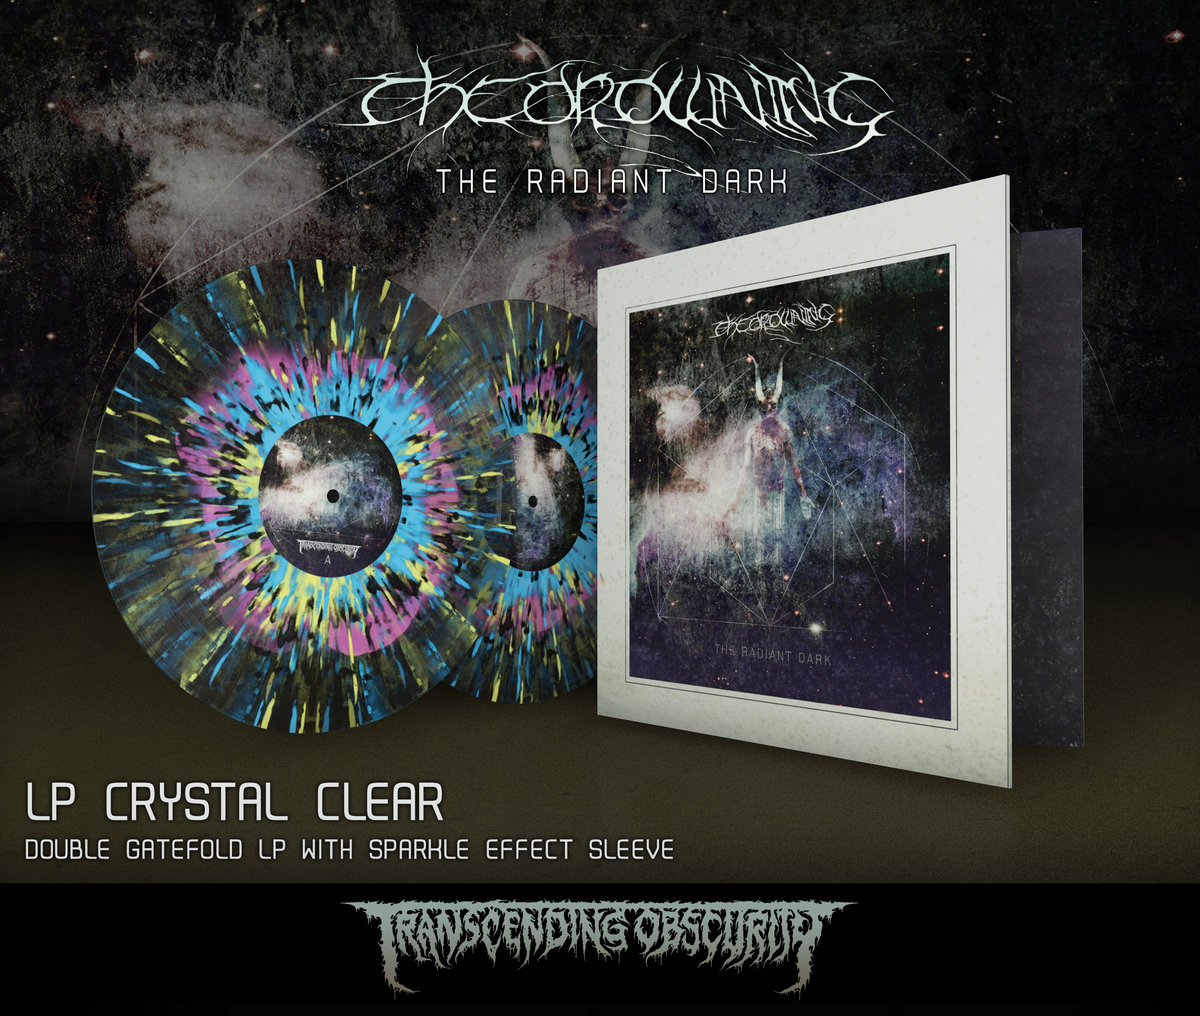 THE DROWNING Gatefold Double LPs with Sparkle Effect Sleeves (Limited to 100)